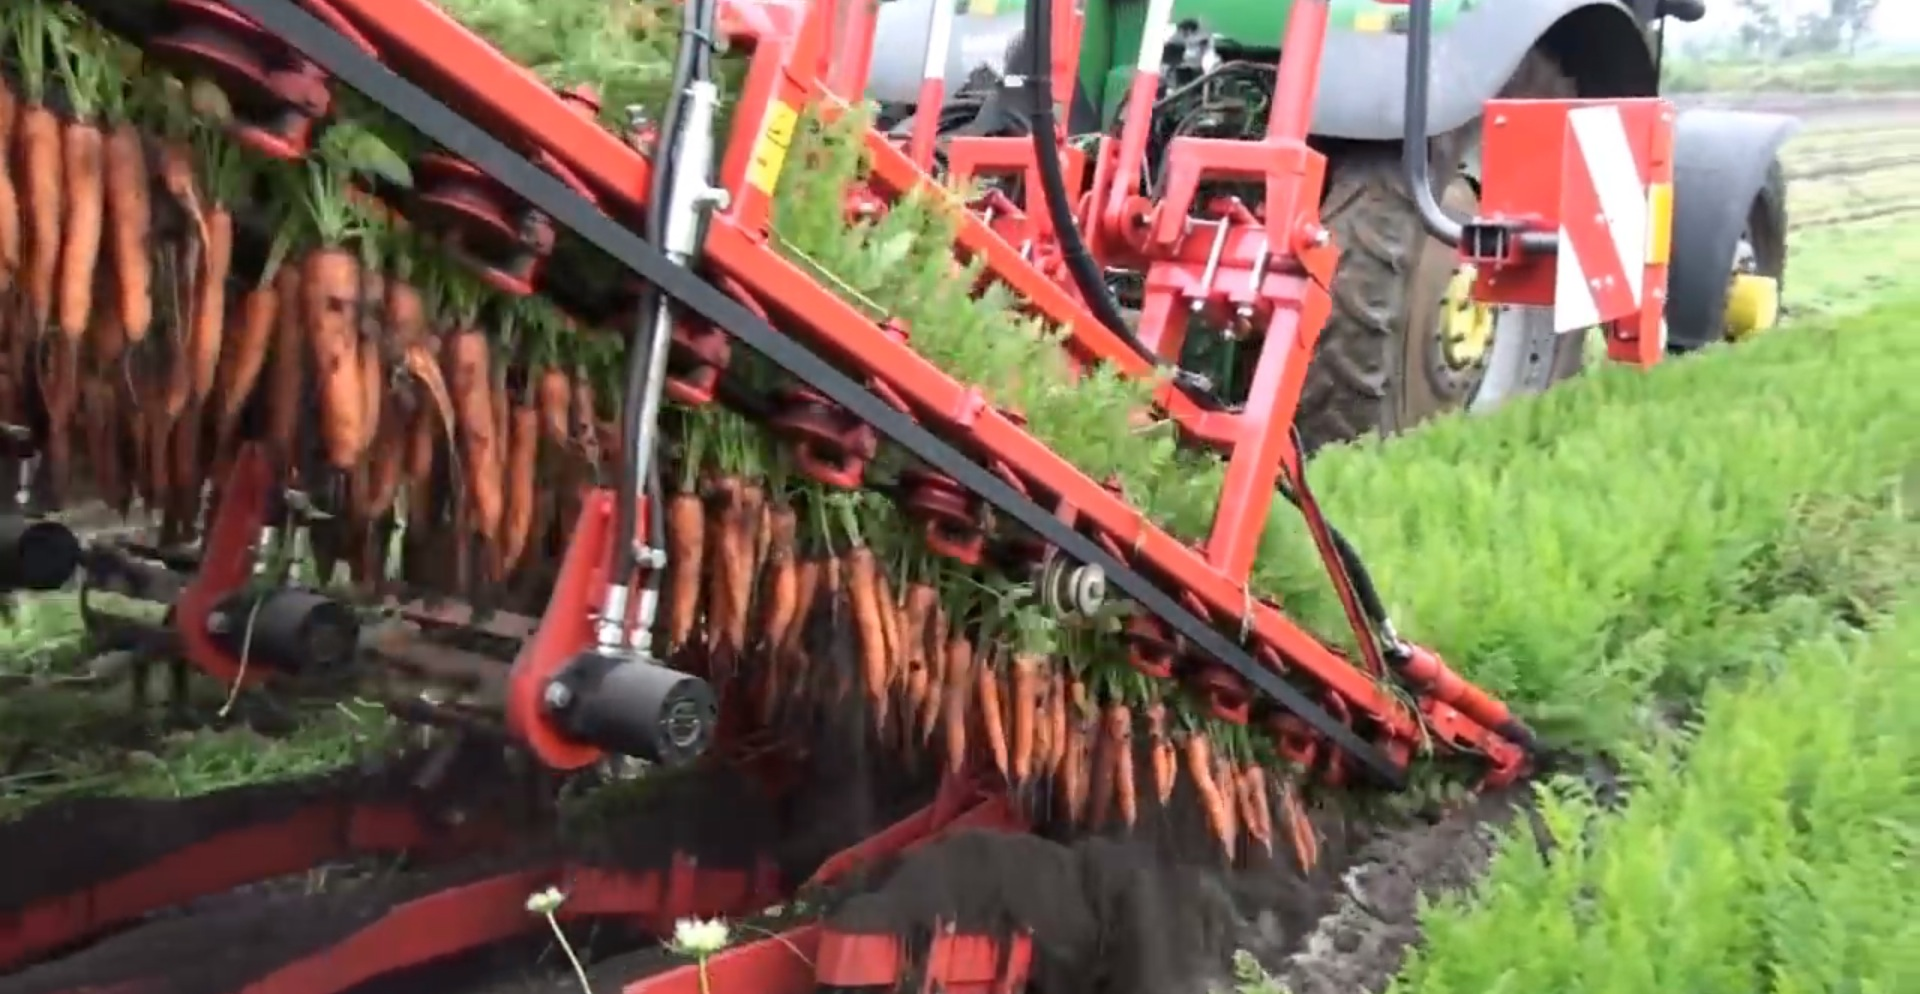 Automated Carrot Harvester Machines Are Mesmerizing To